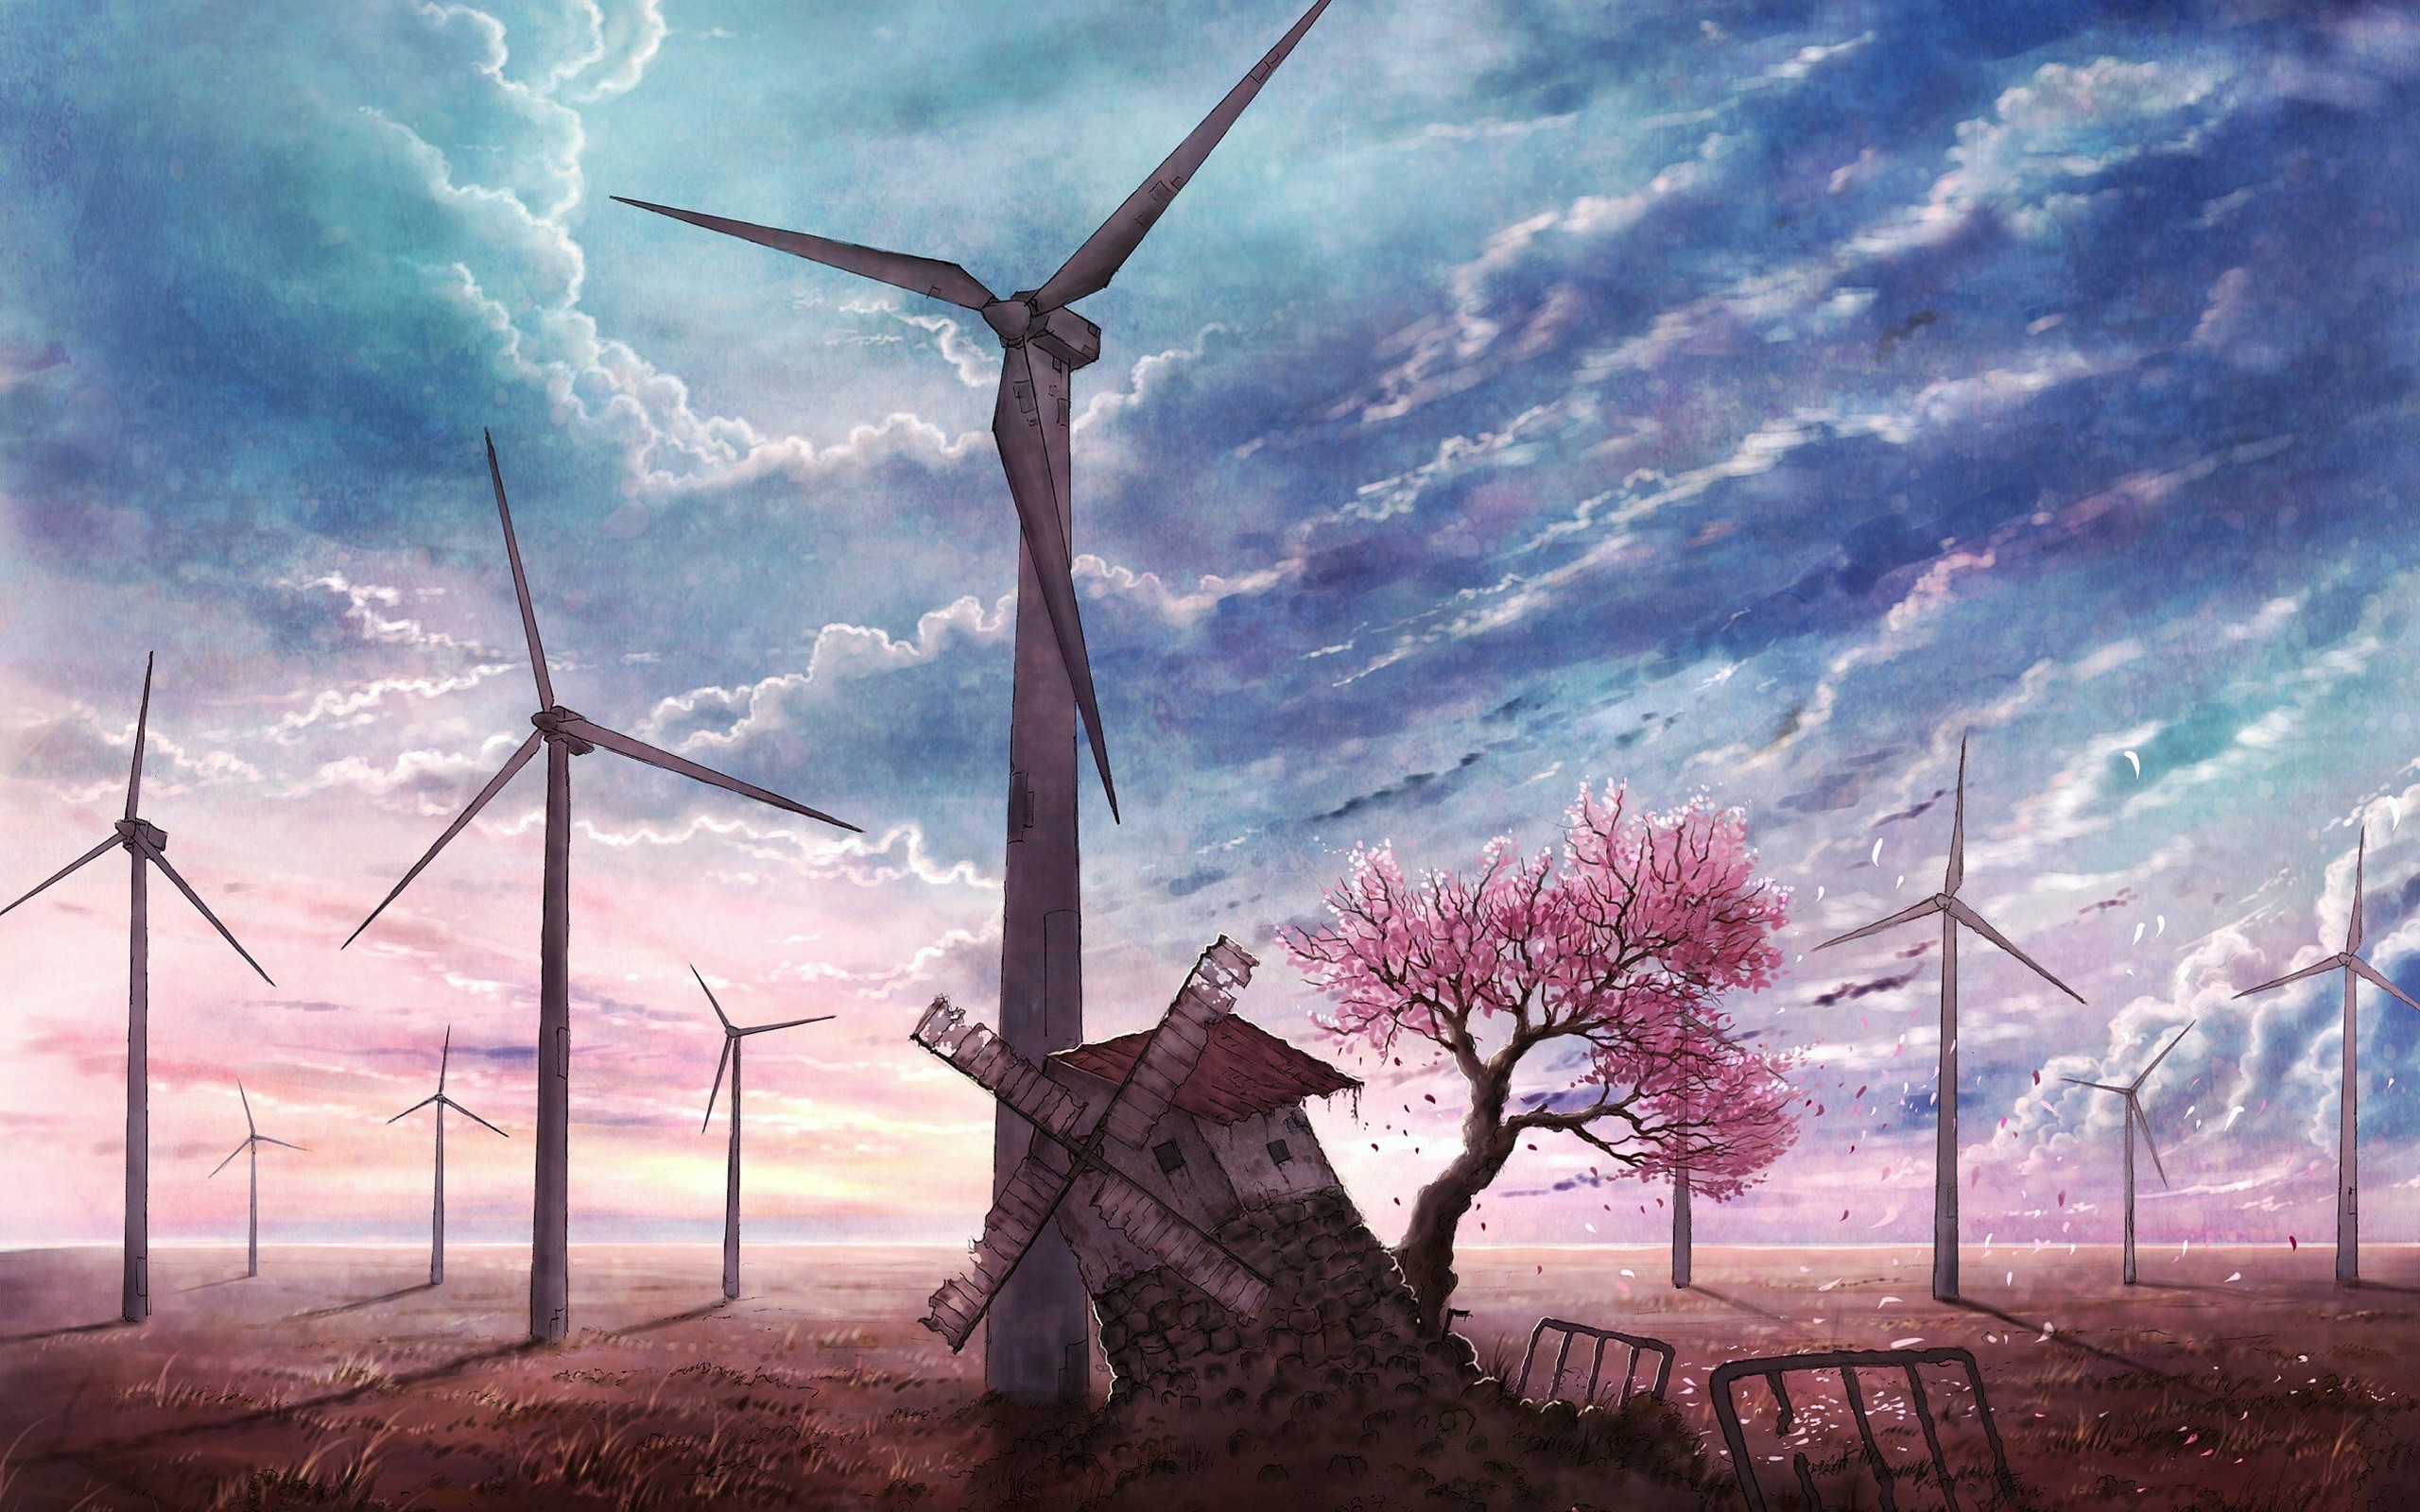 Replaced (Windmill, windmill for the land. Turn forever hand in hand.